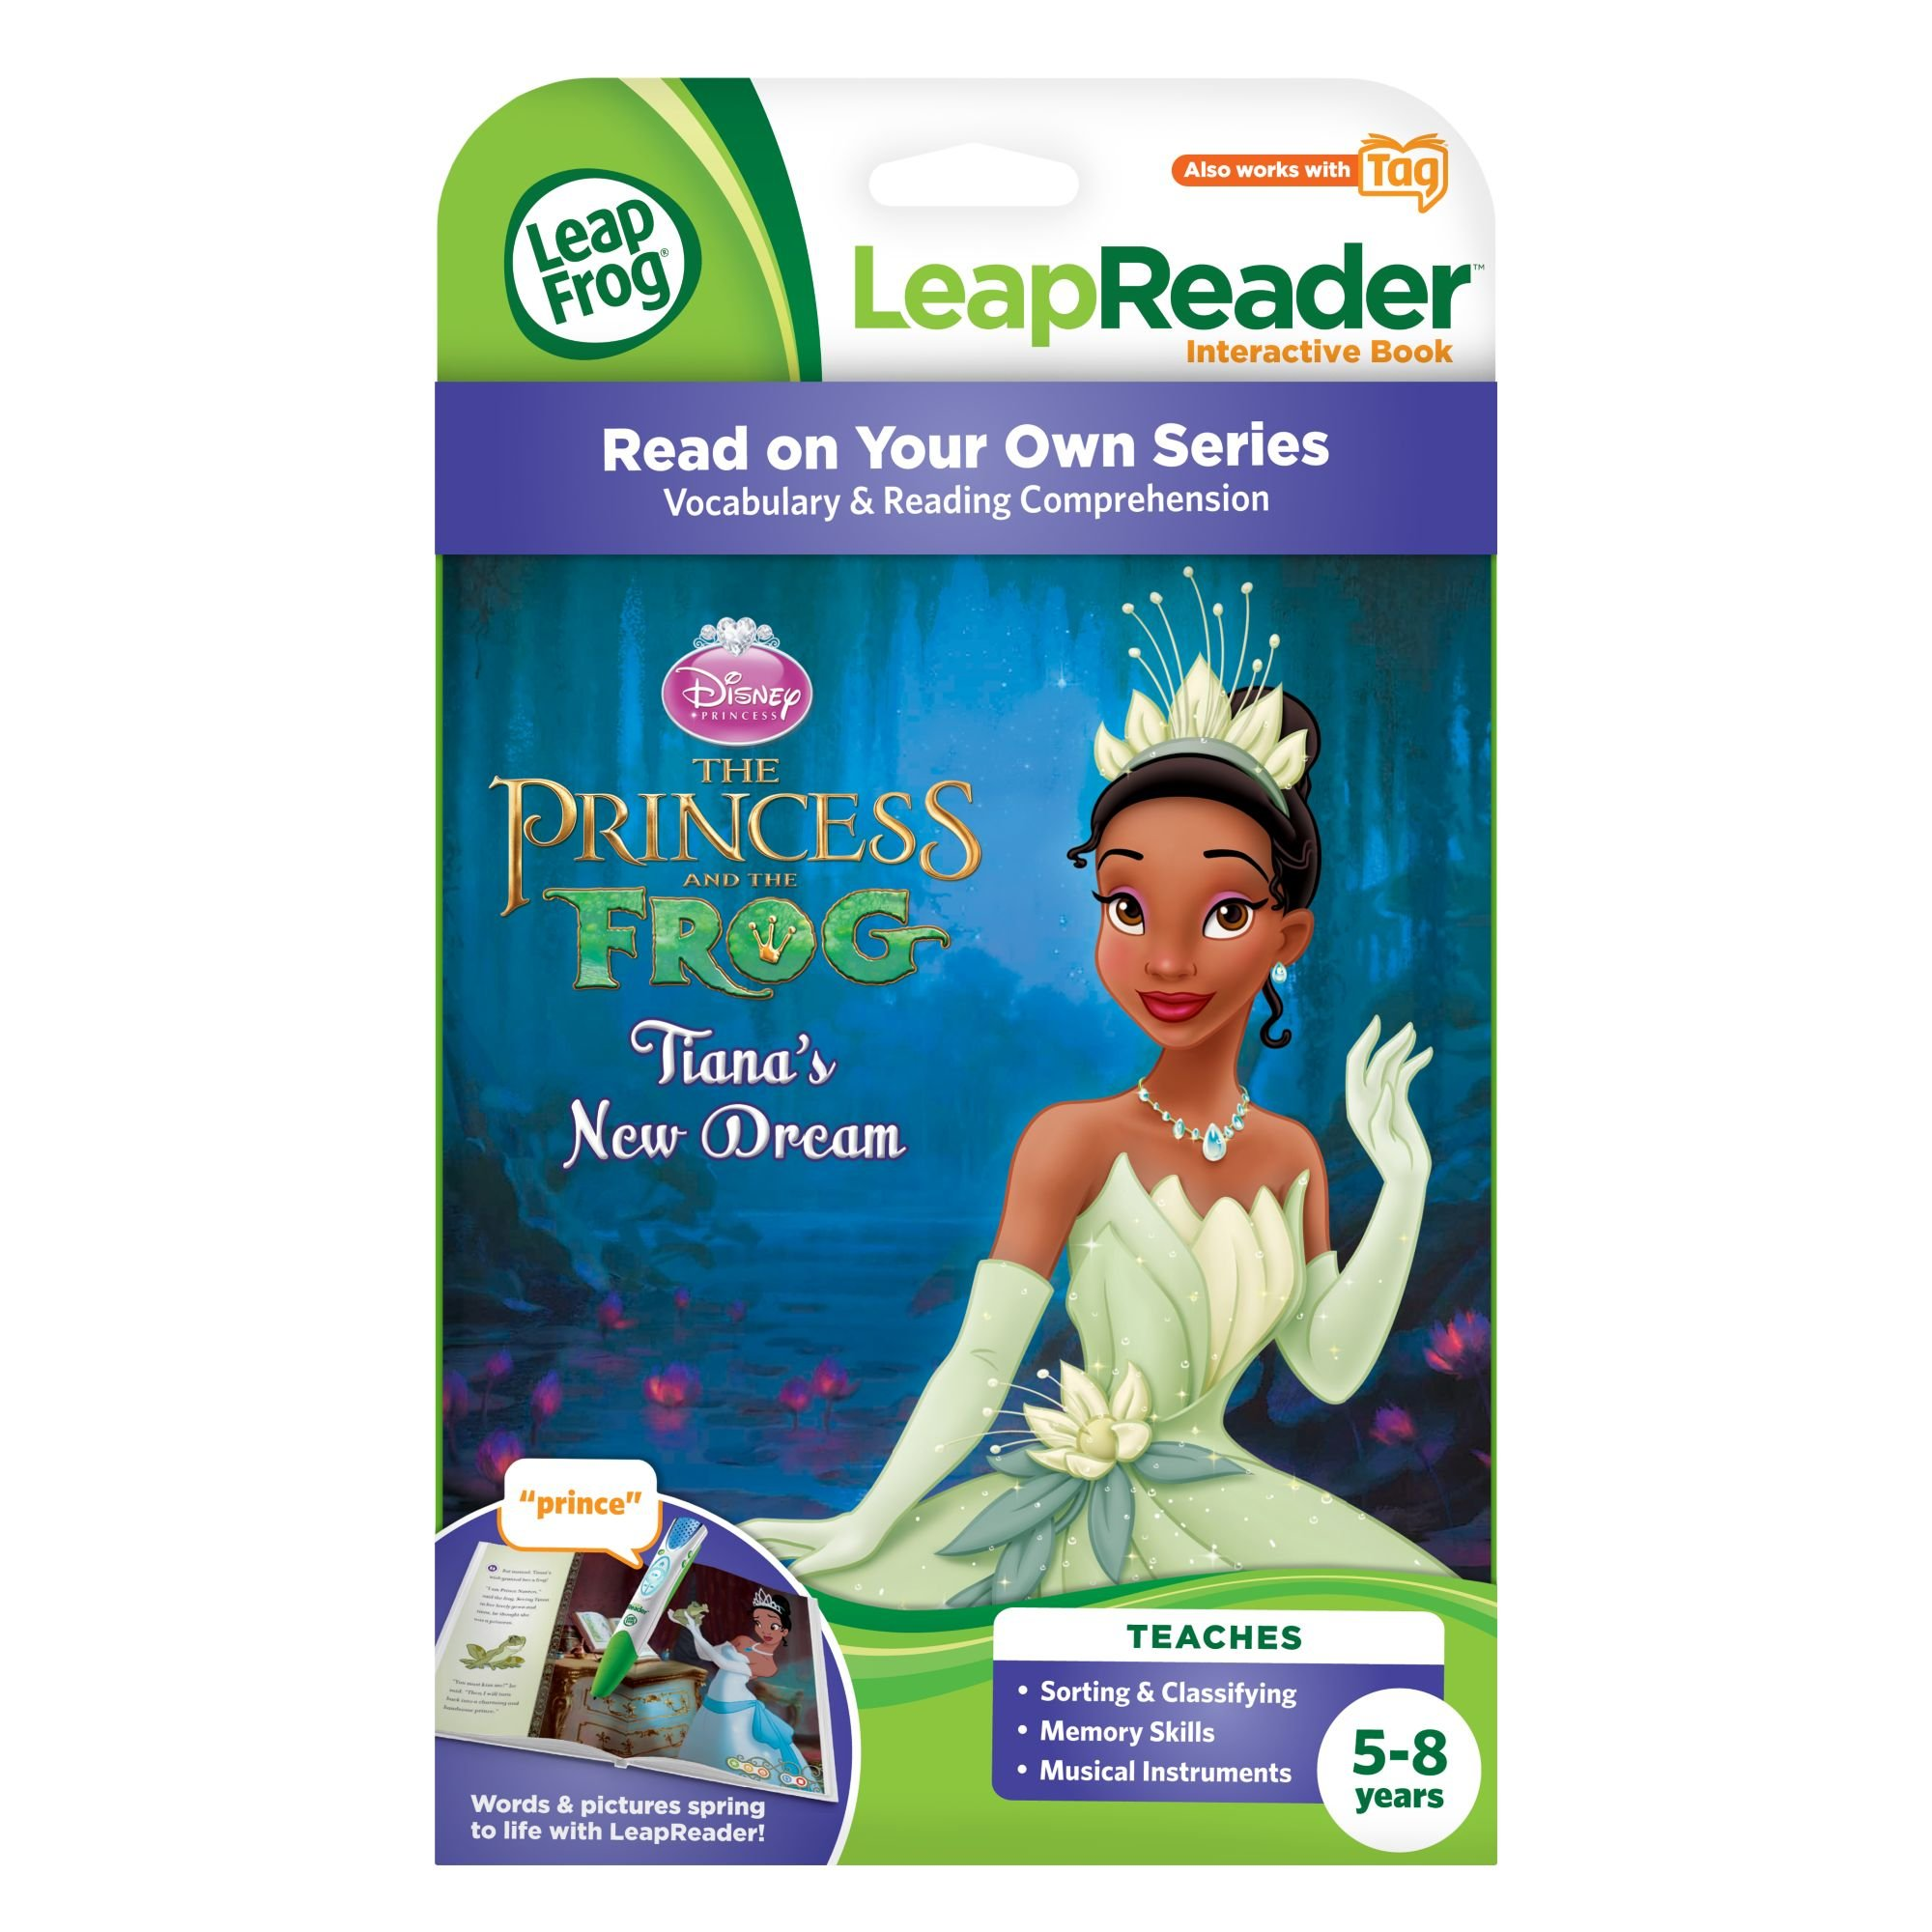 LeapFrog LeapReader Book: Disney Princess and the Frog (works with Tag) by LeapFrog (Image #3)